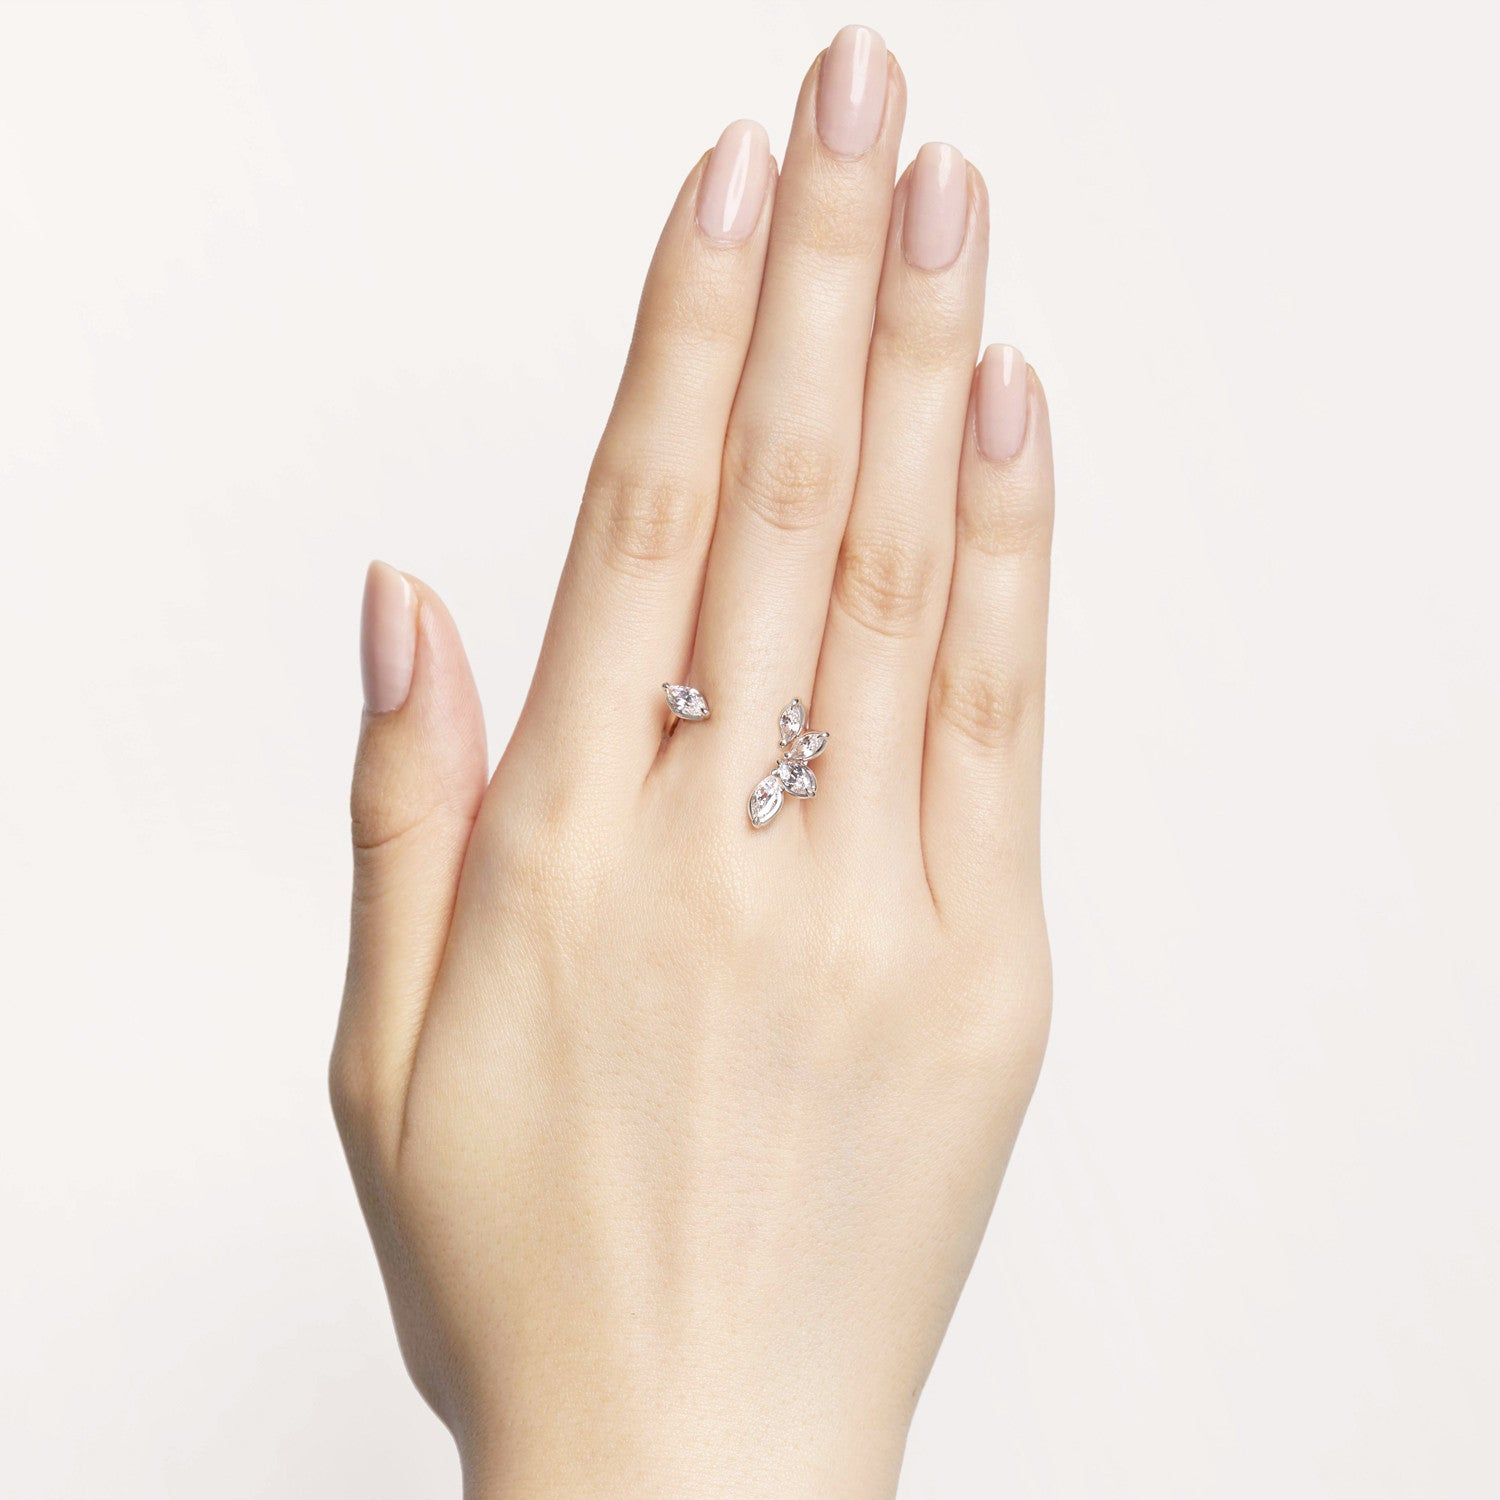 Marquise-shaped white diamonds floating cuffs on your skin